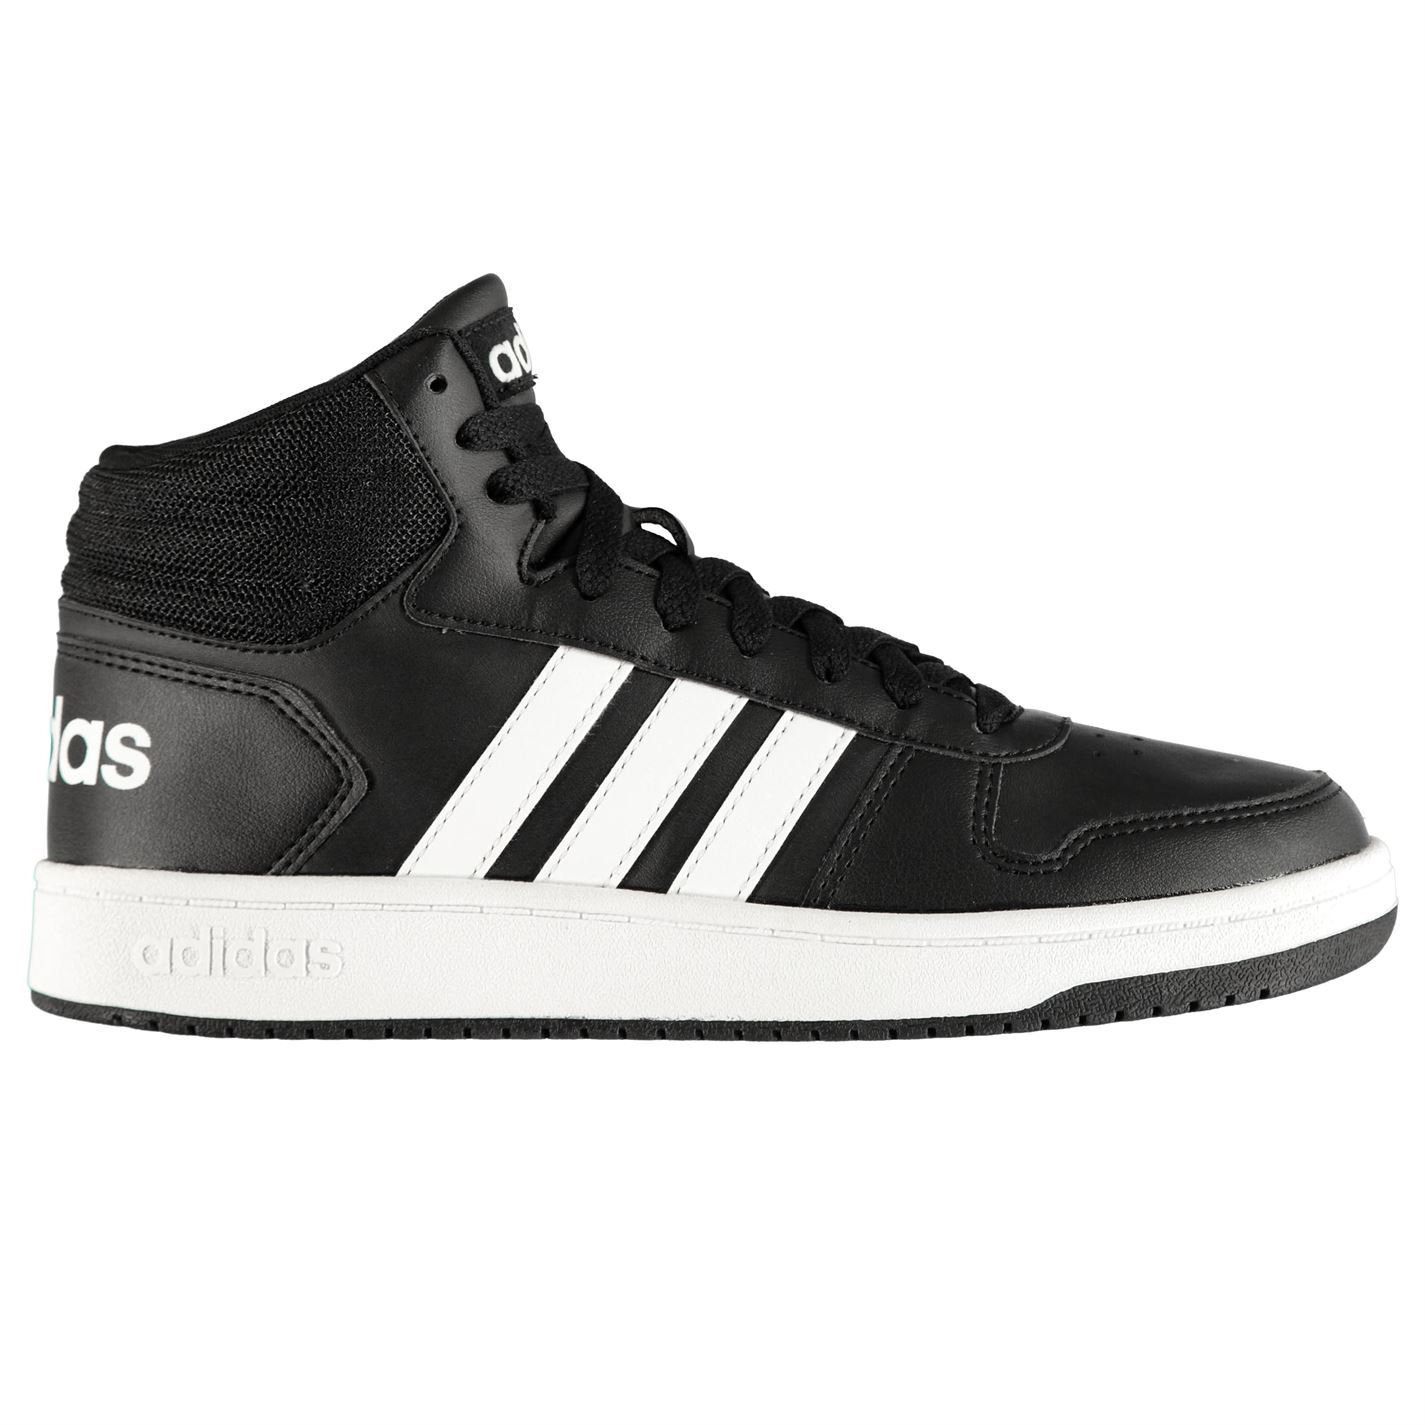 Adidas-Hoops-Mi-Montantes-Homme-athleisure-Chaussures-Baskets-Chaussures miniature 3